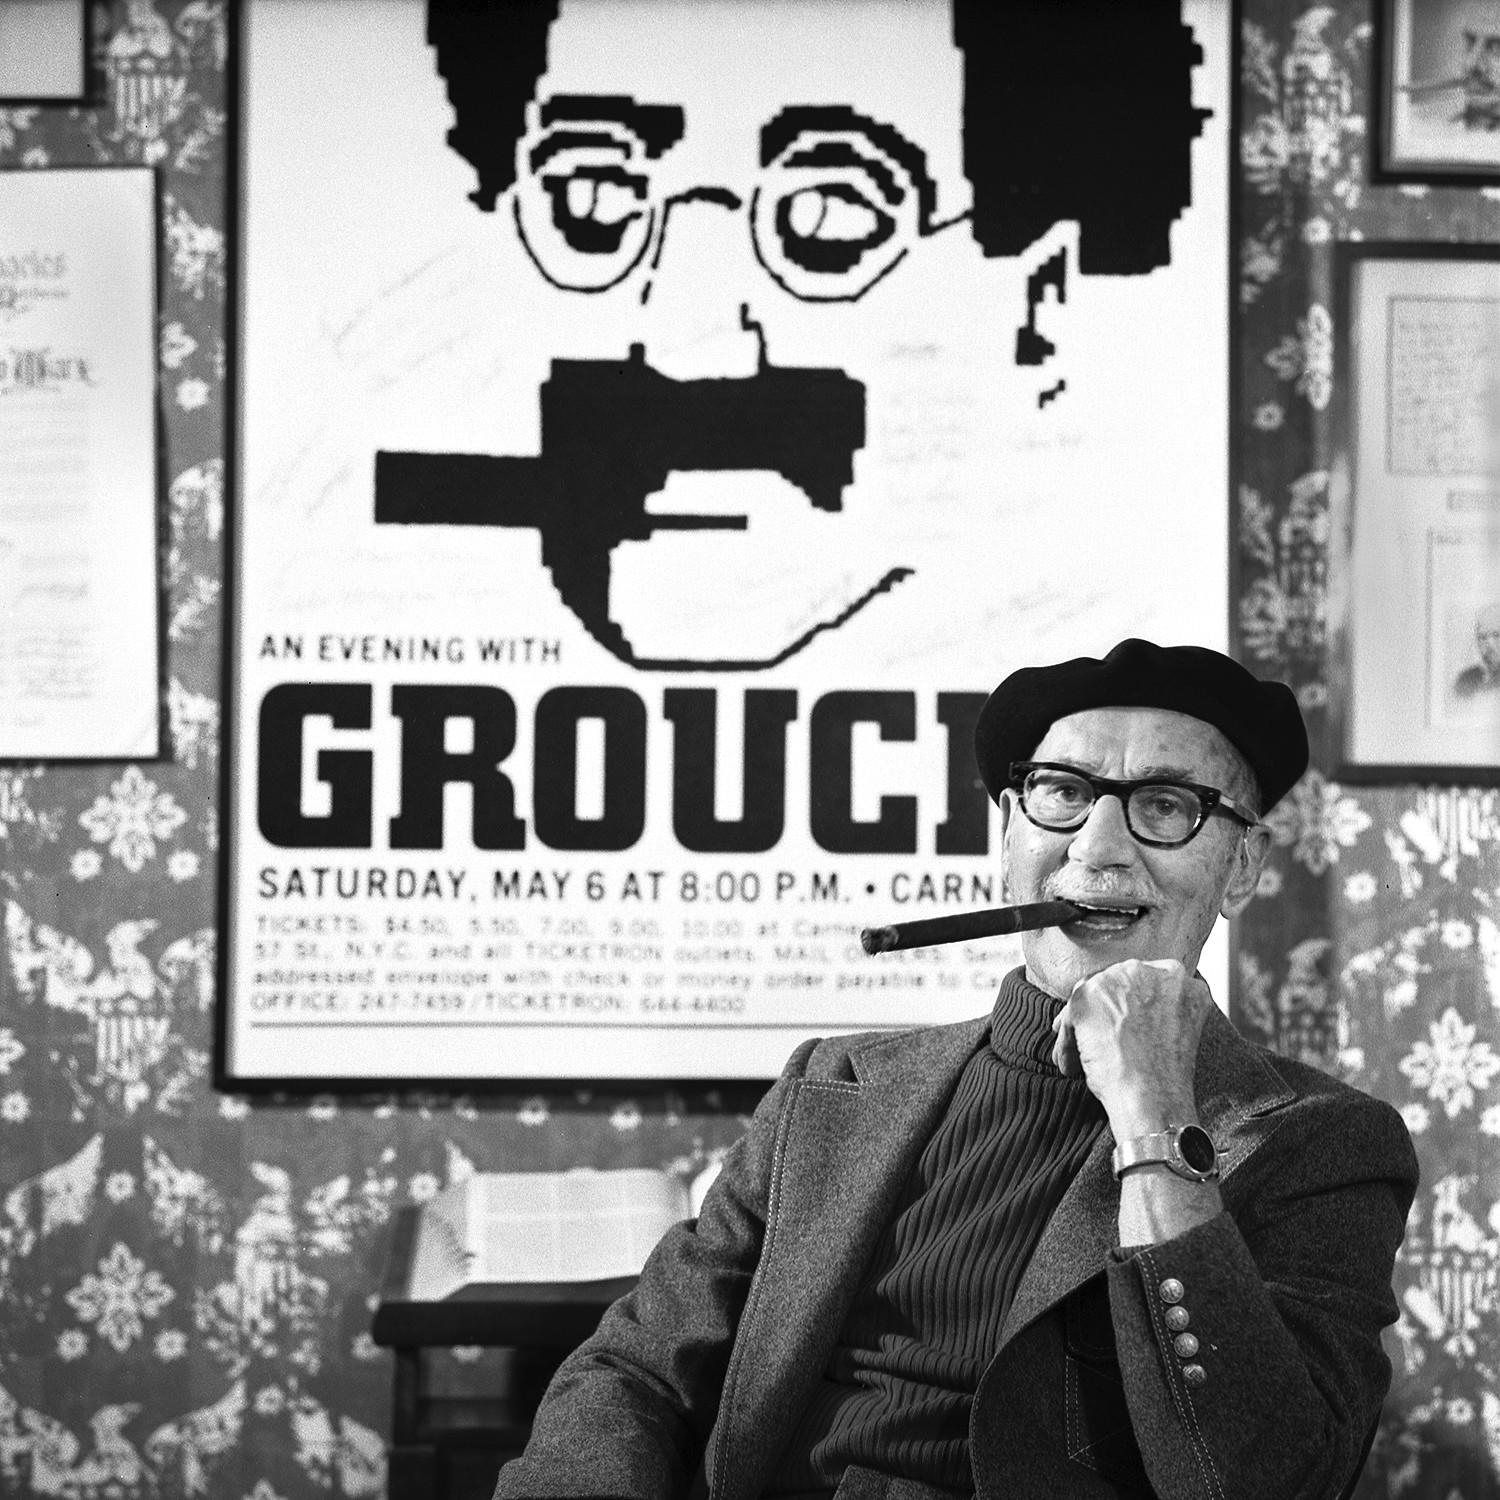 An Evening with Groucho